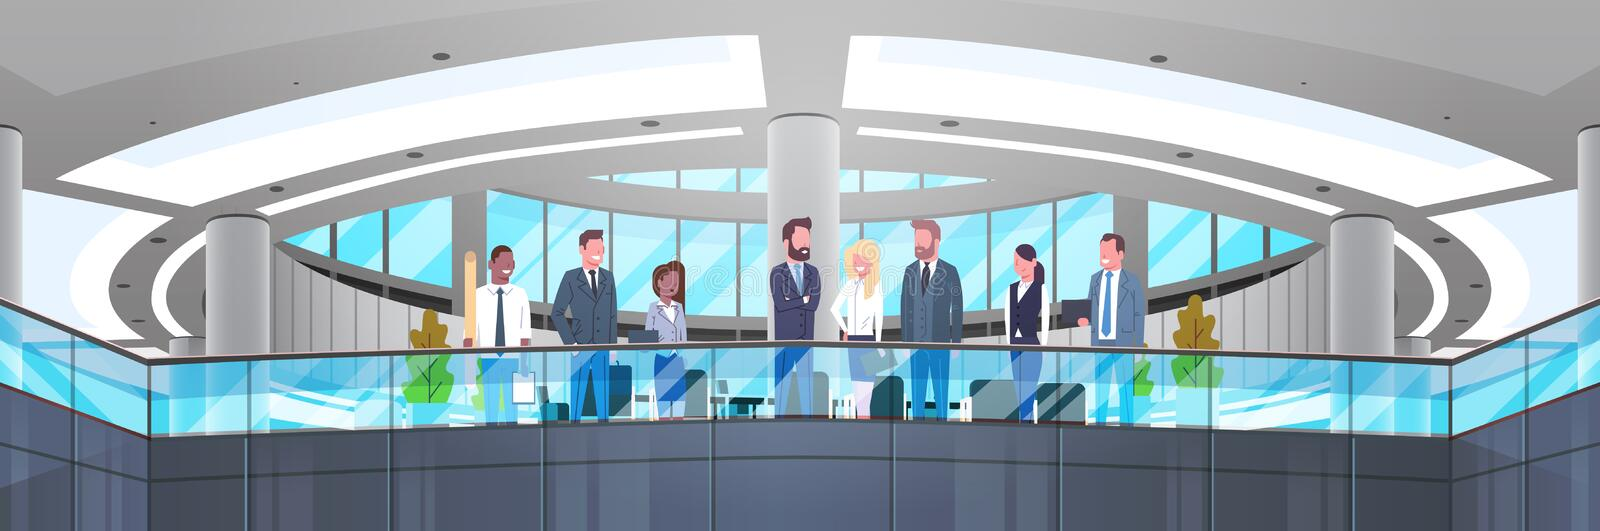 Modern Office Interior With Group Of Business People, Professionals Businessmen And Businesswomen Workplace Concept. Horizontal Banner Flat Vector Illustration royalty free illustration